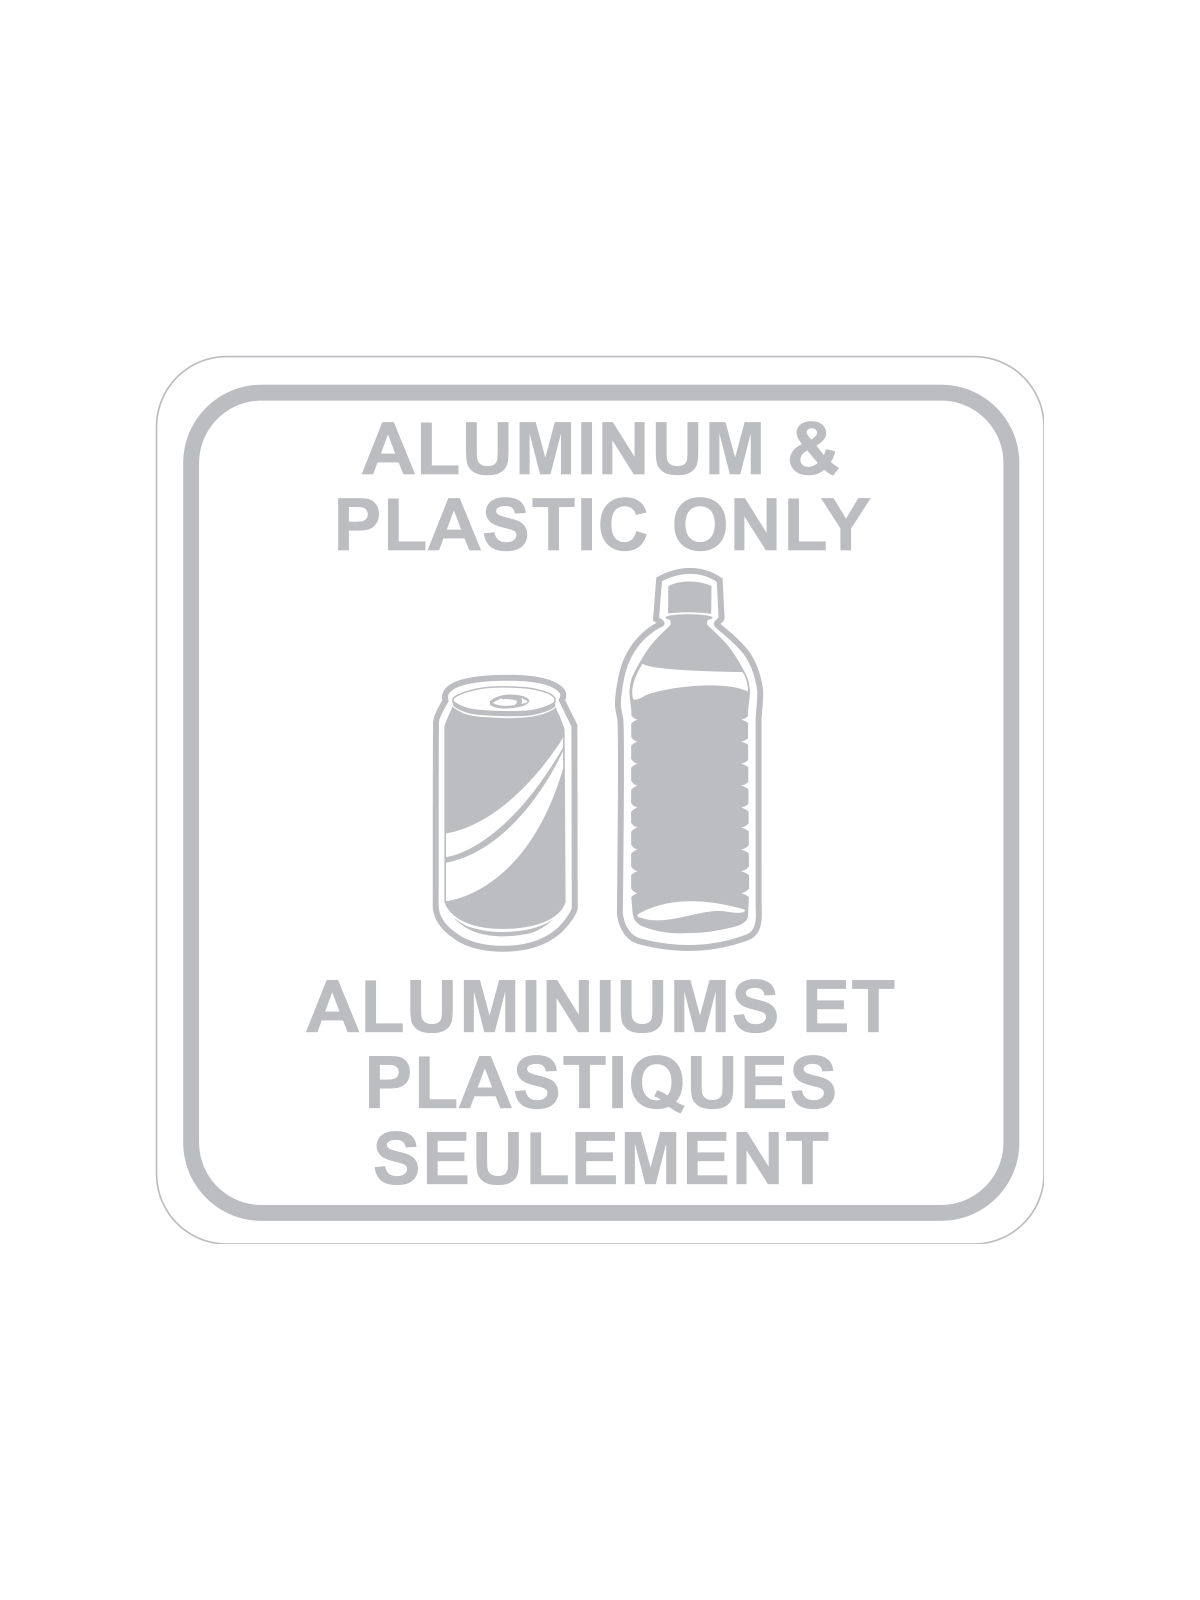 SQUARE LABEL ALUMINUM & PLASTIC ONLY - ENG/FRE